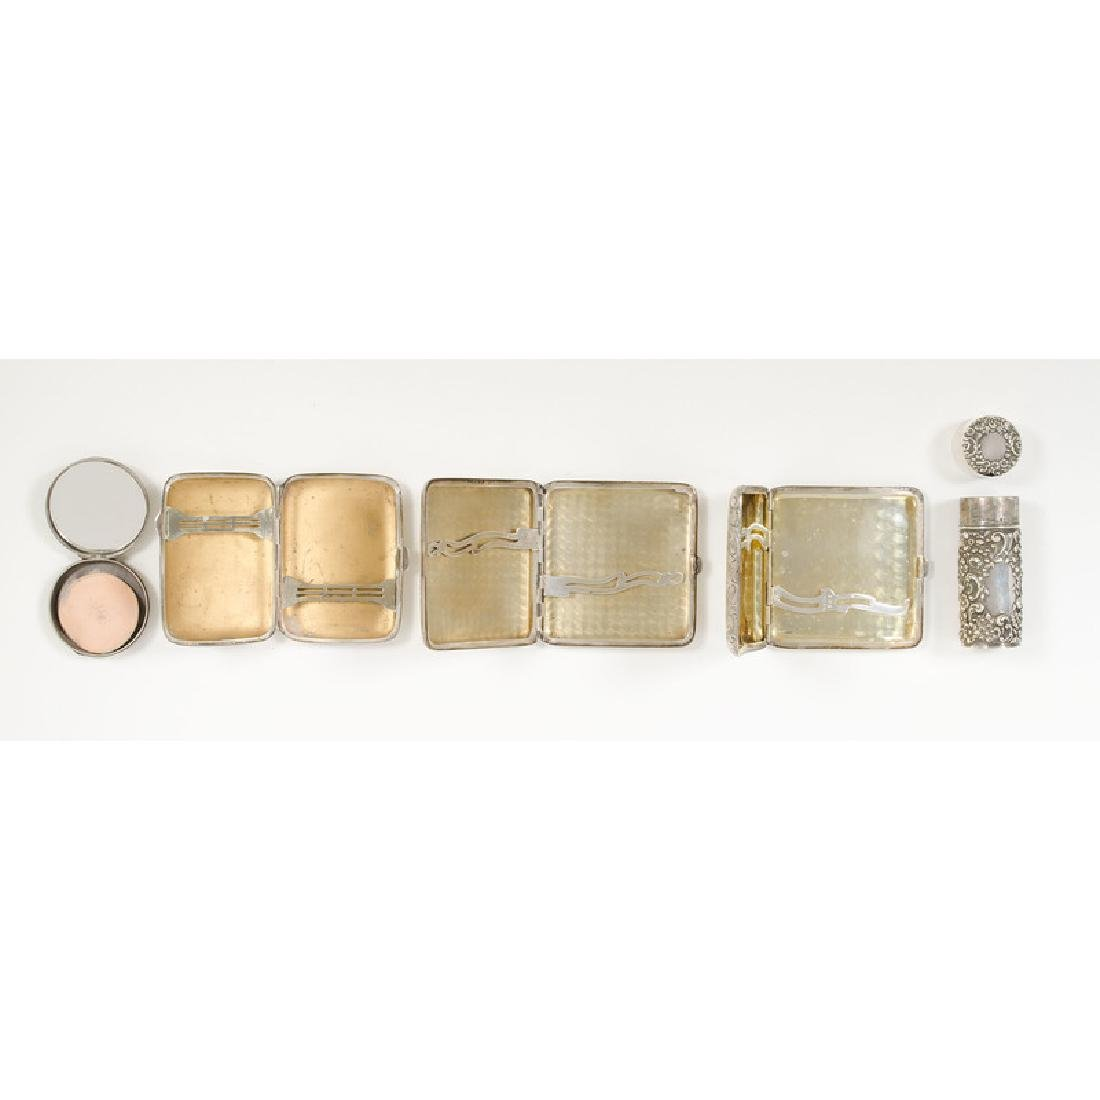 Sterling Cigarette Cases, Perfume Bottle and Compact - 2